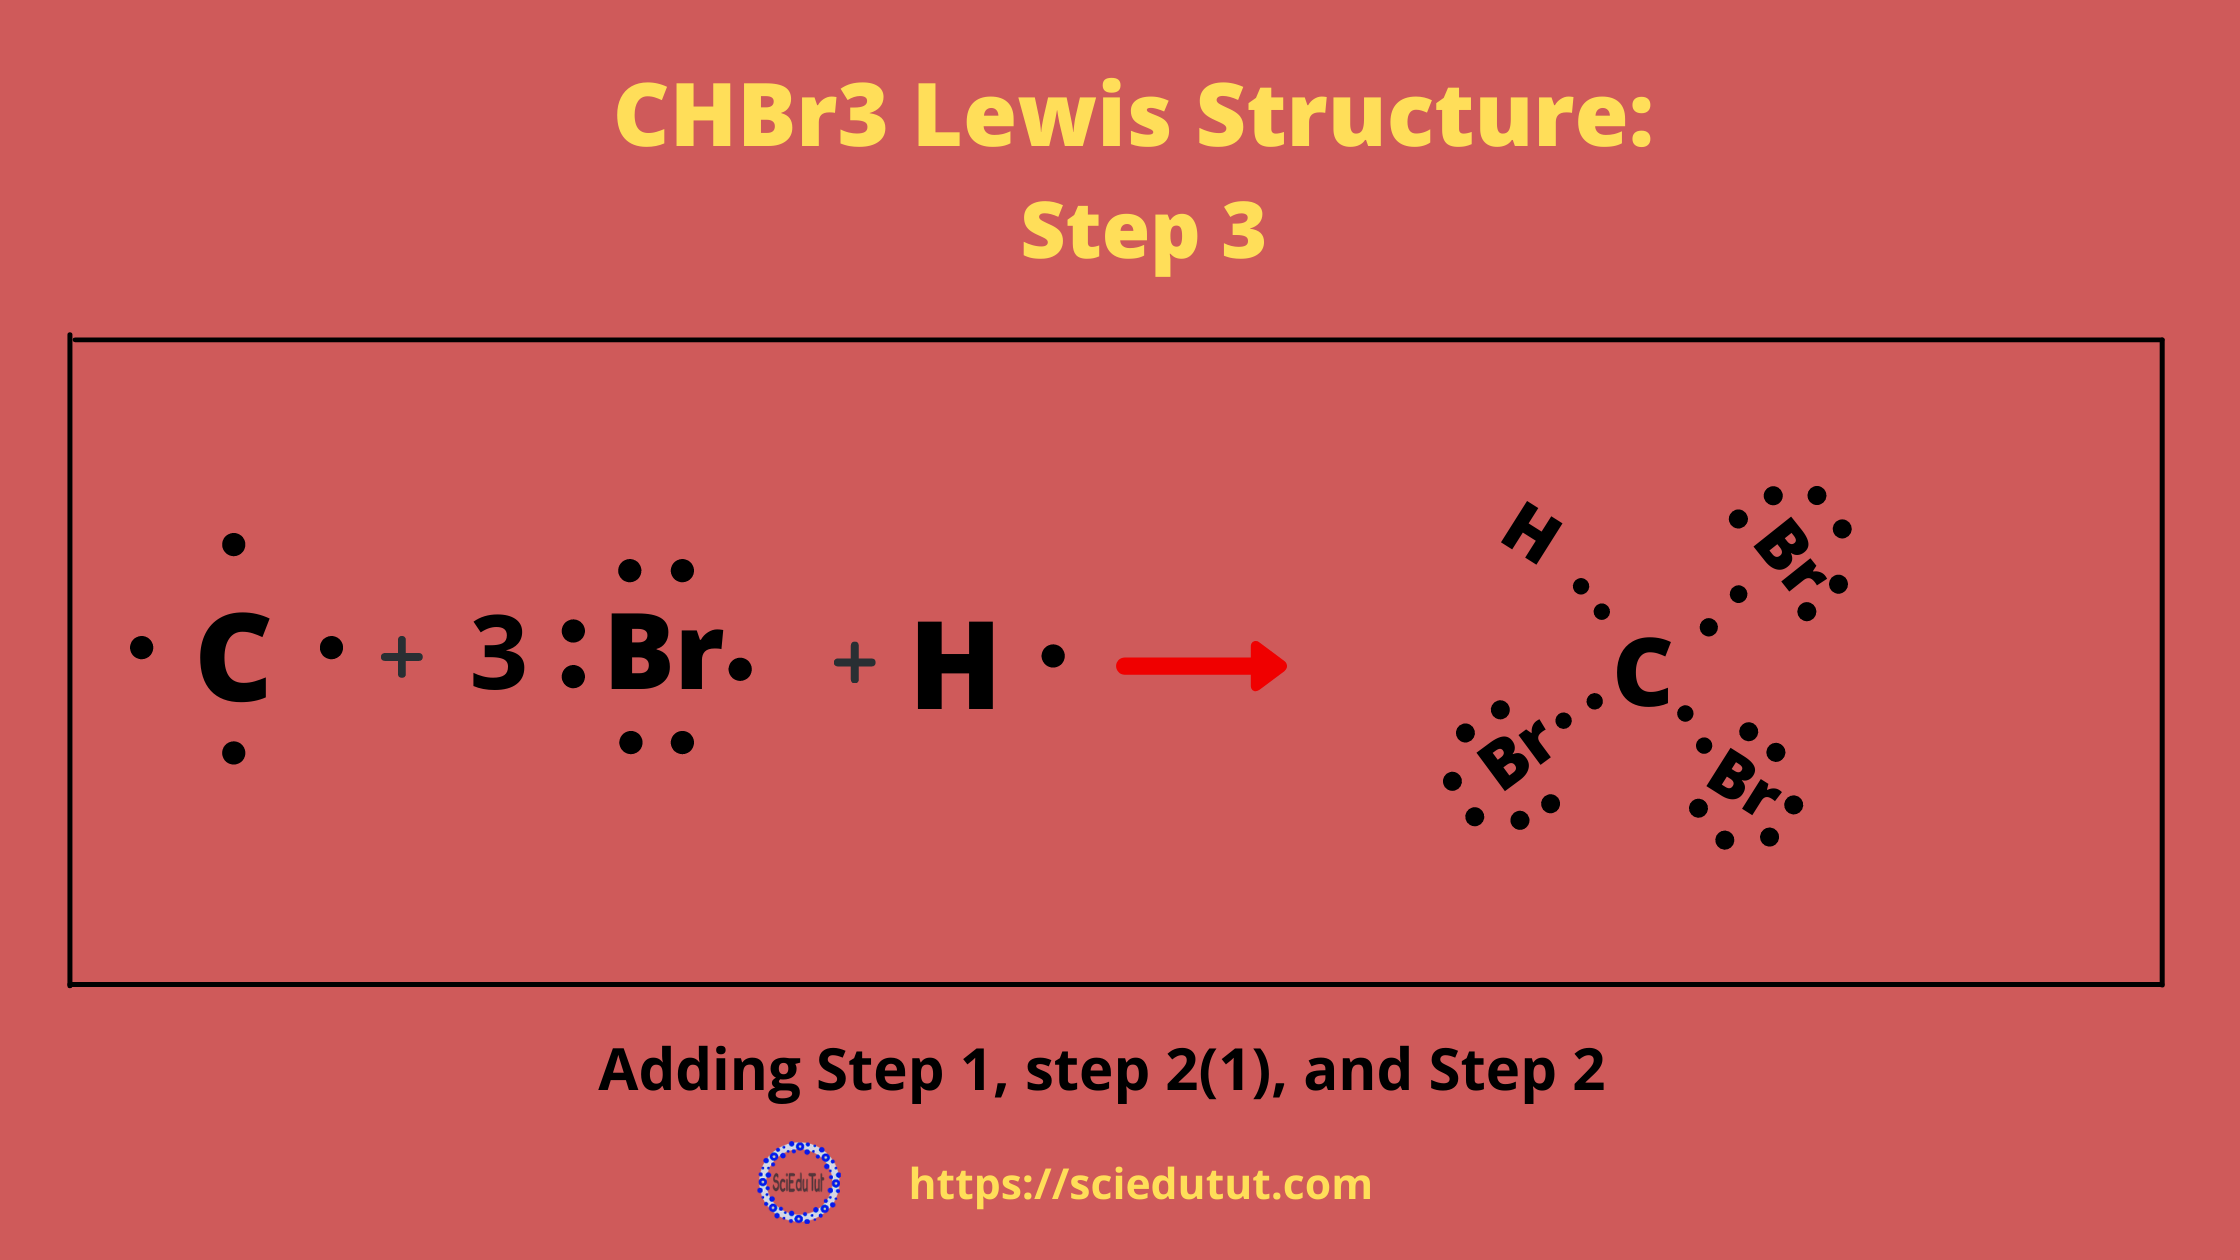 How to draw CHBr3 Lewis Structure?